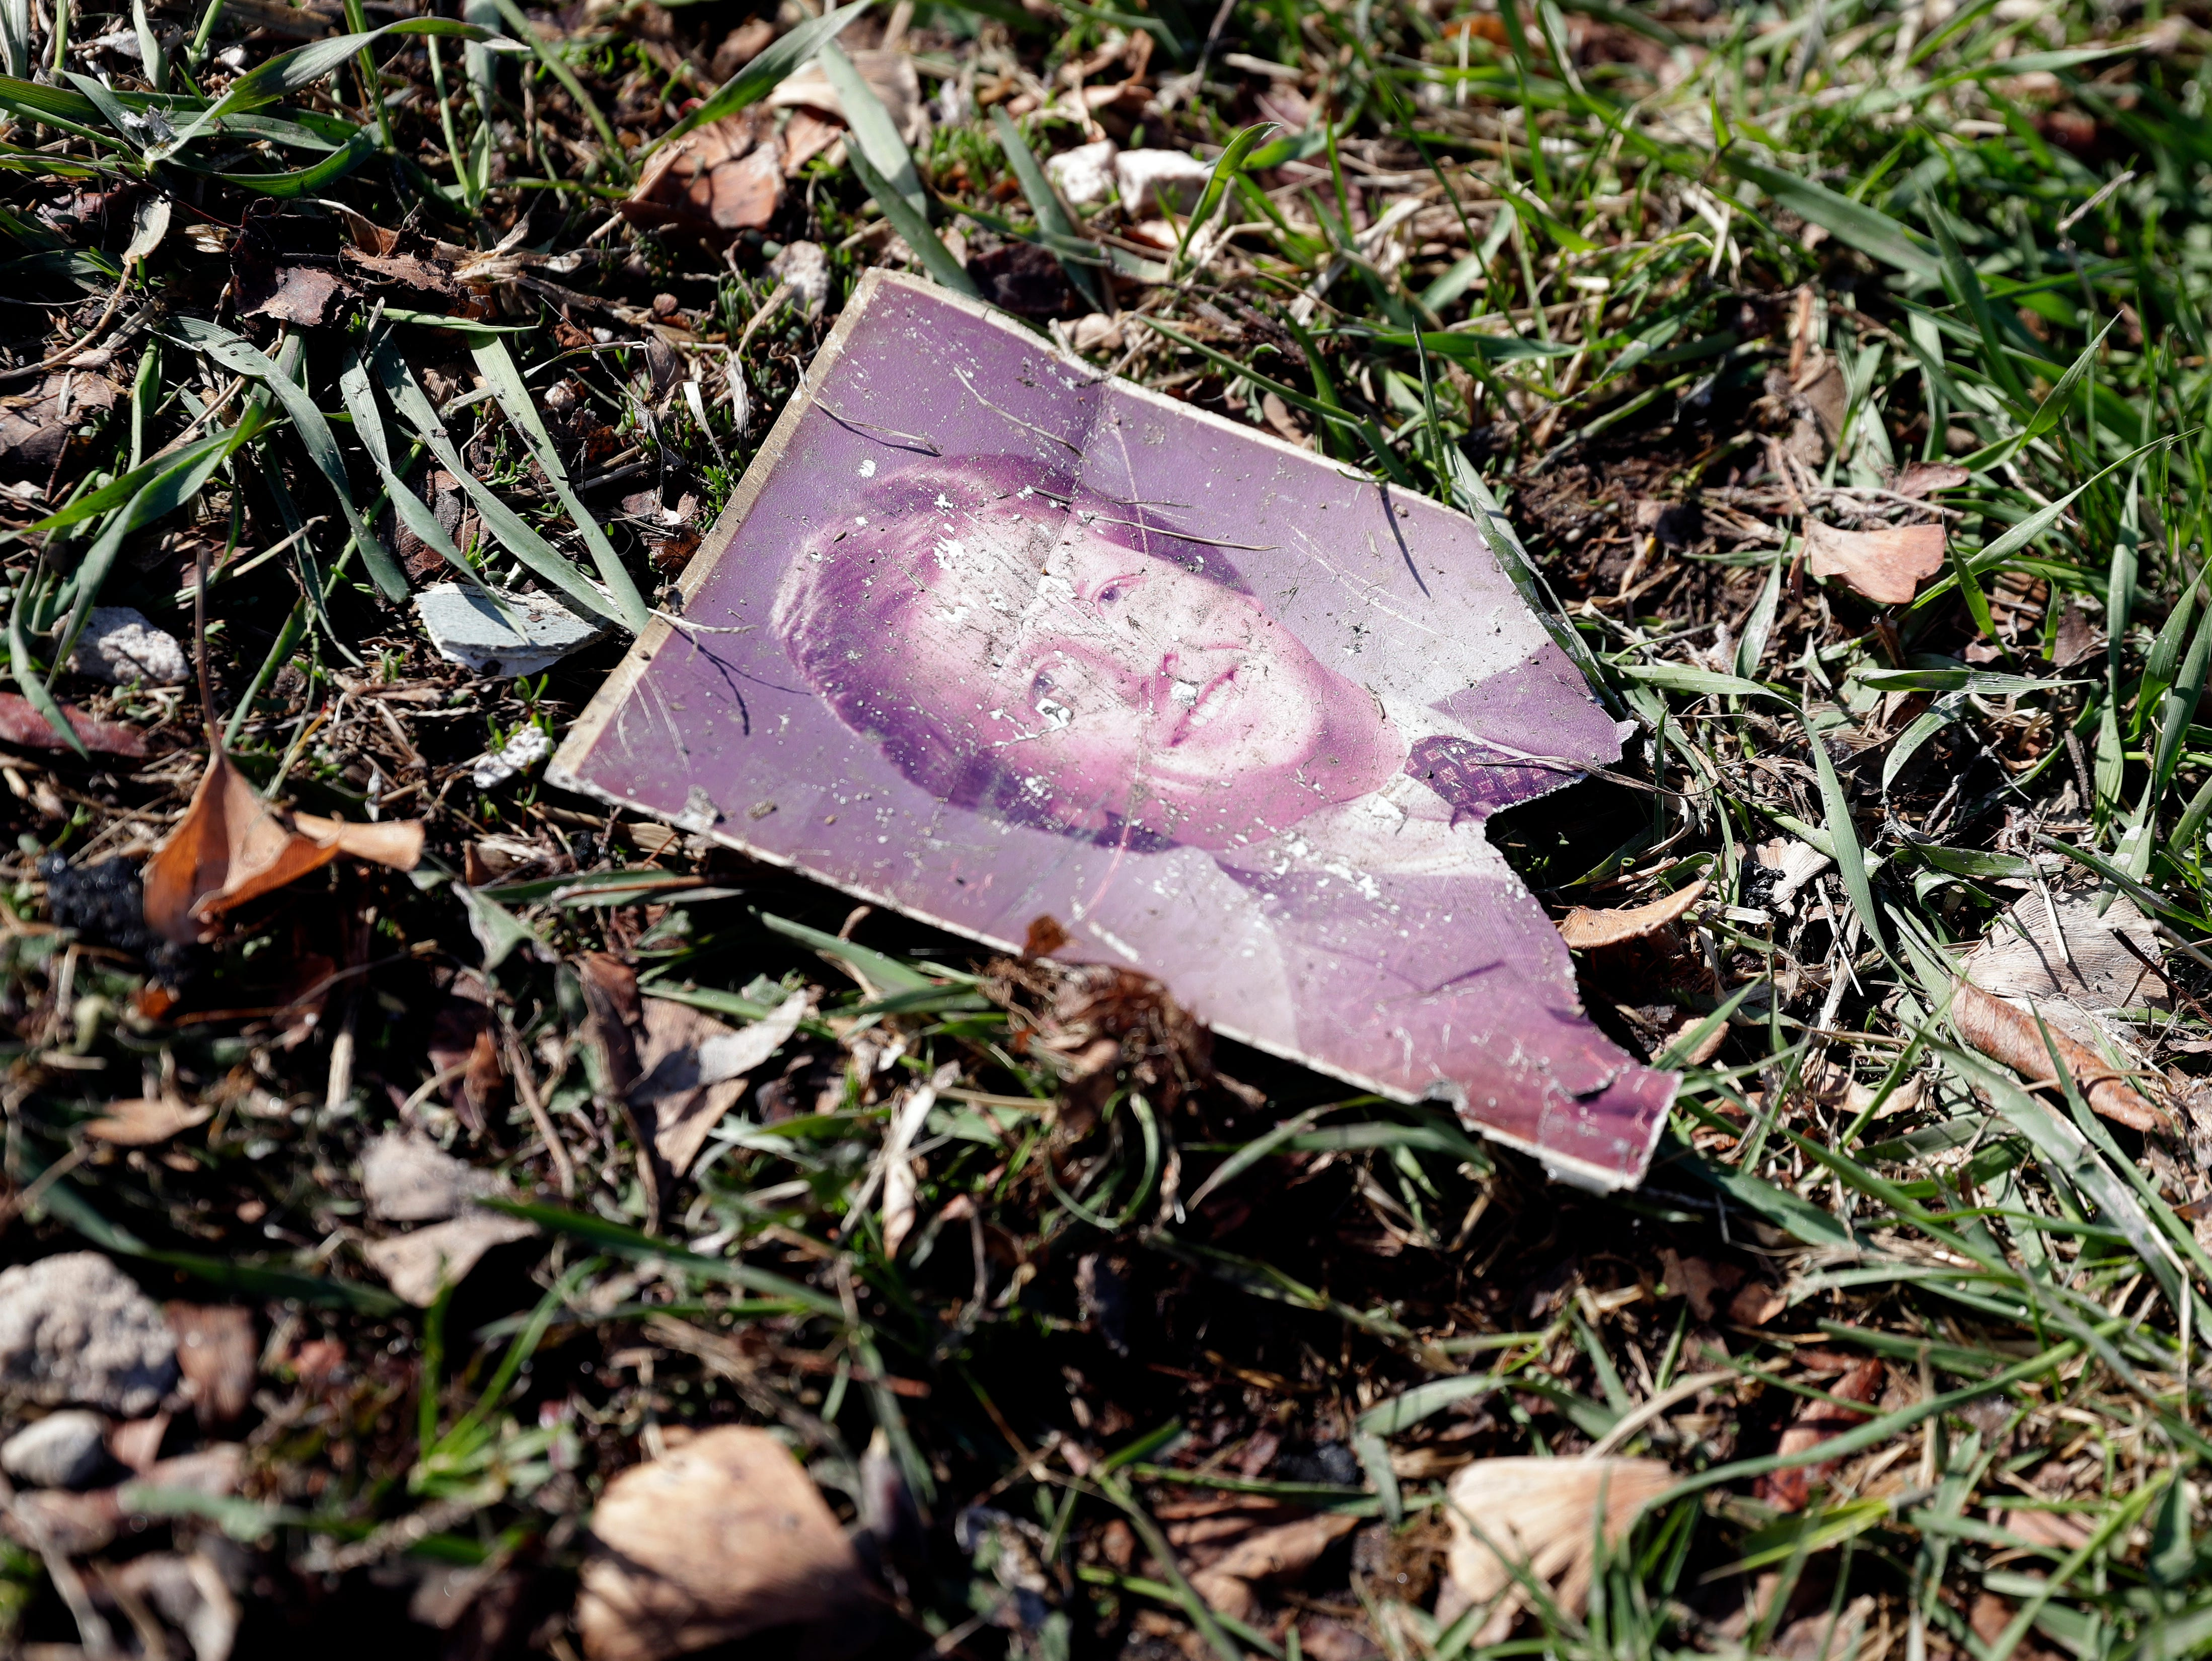 A photograph lies in the grass near the remains of 100 S. Broadway in De Pere on April 24, 2019, after the building burned down overnight. The building was home to Ogan Restaurant, apartments and a number of other businesses.